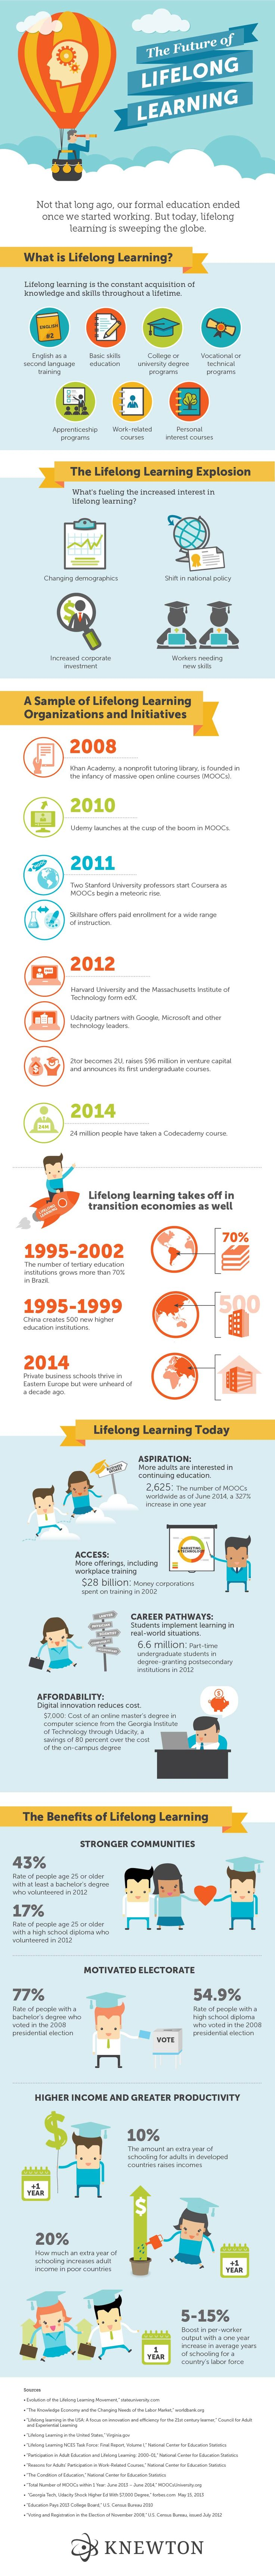 The Future of Lifelong Learning Infographic - http://elearninginfographics.com/future-lifelong-learning-infographic/